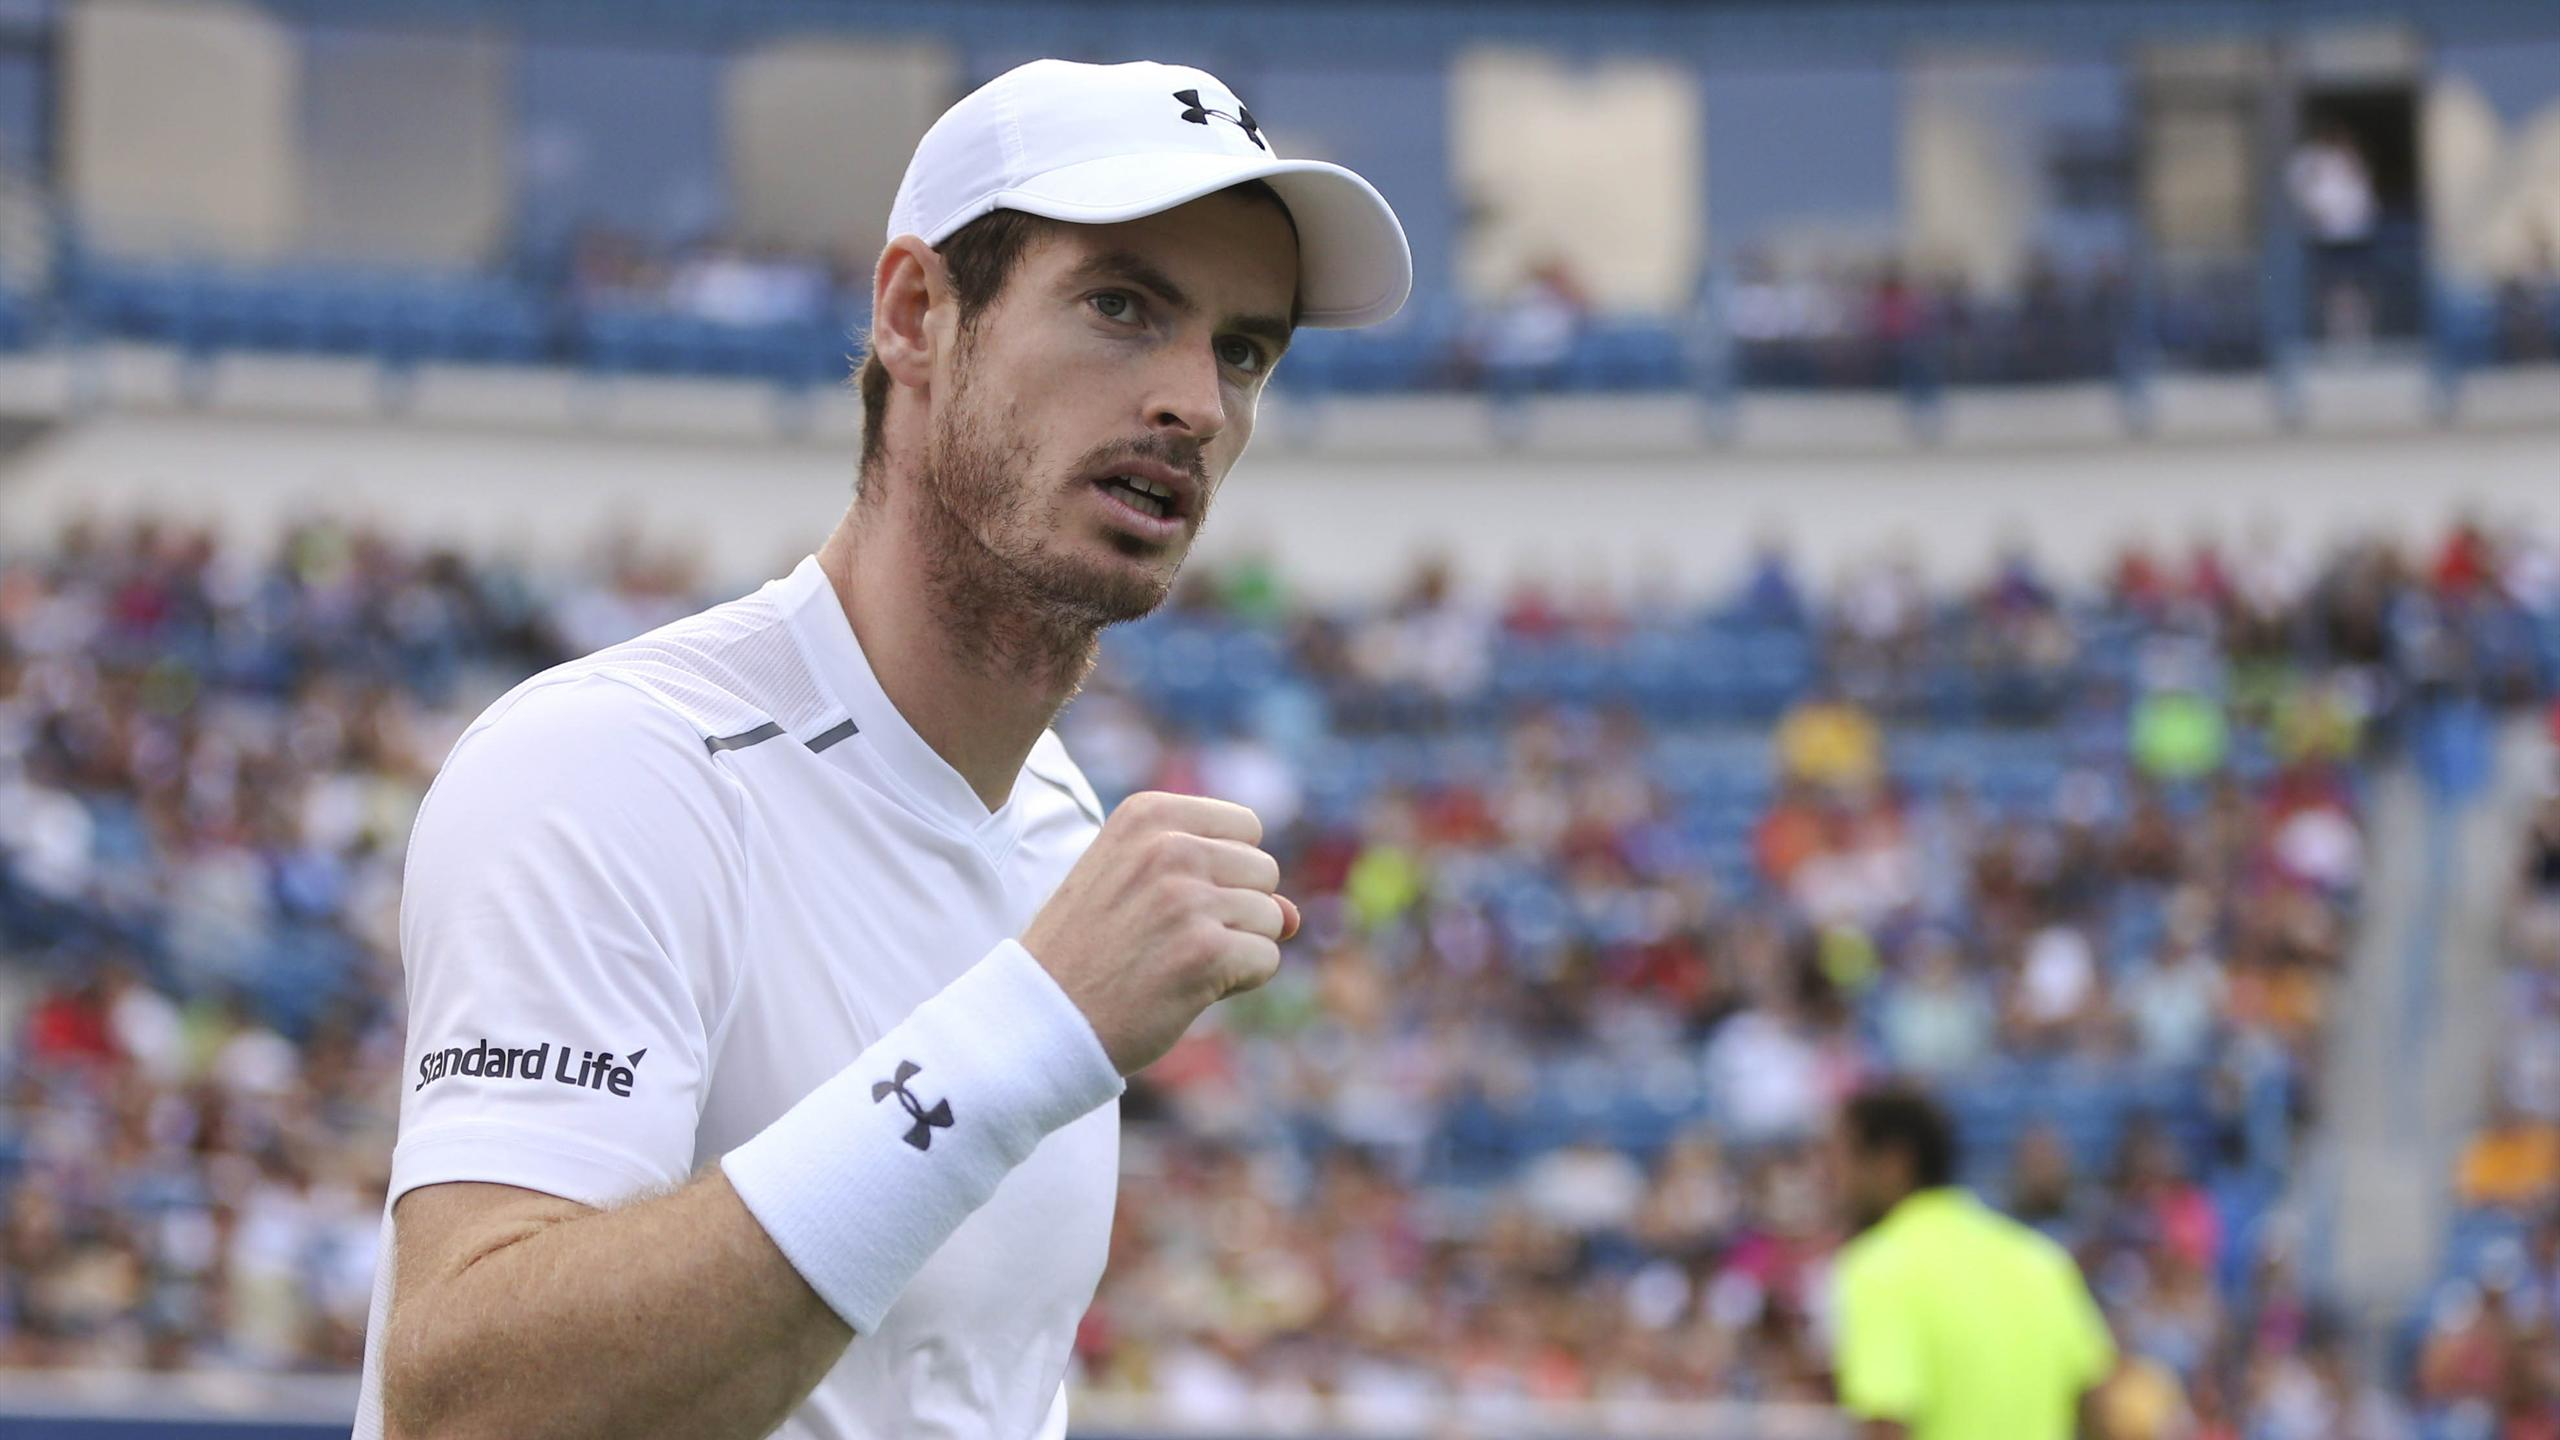 Andy Murray (GBR) reacts against Marin Cilic (CRO)